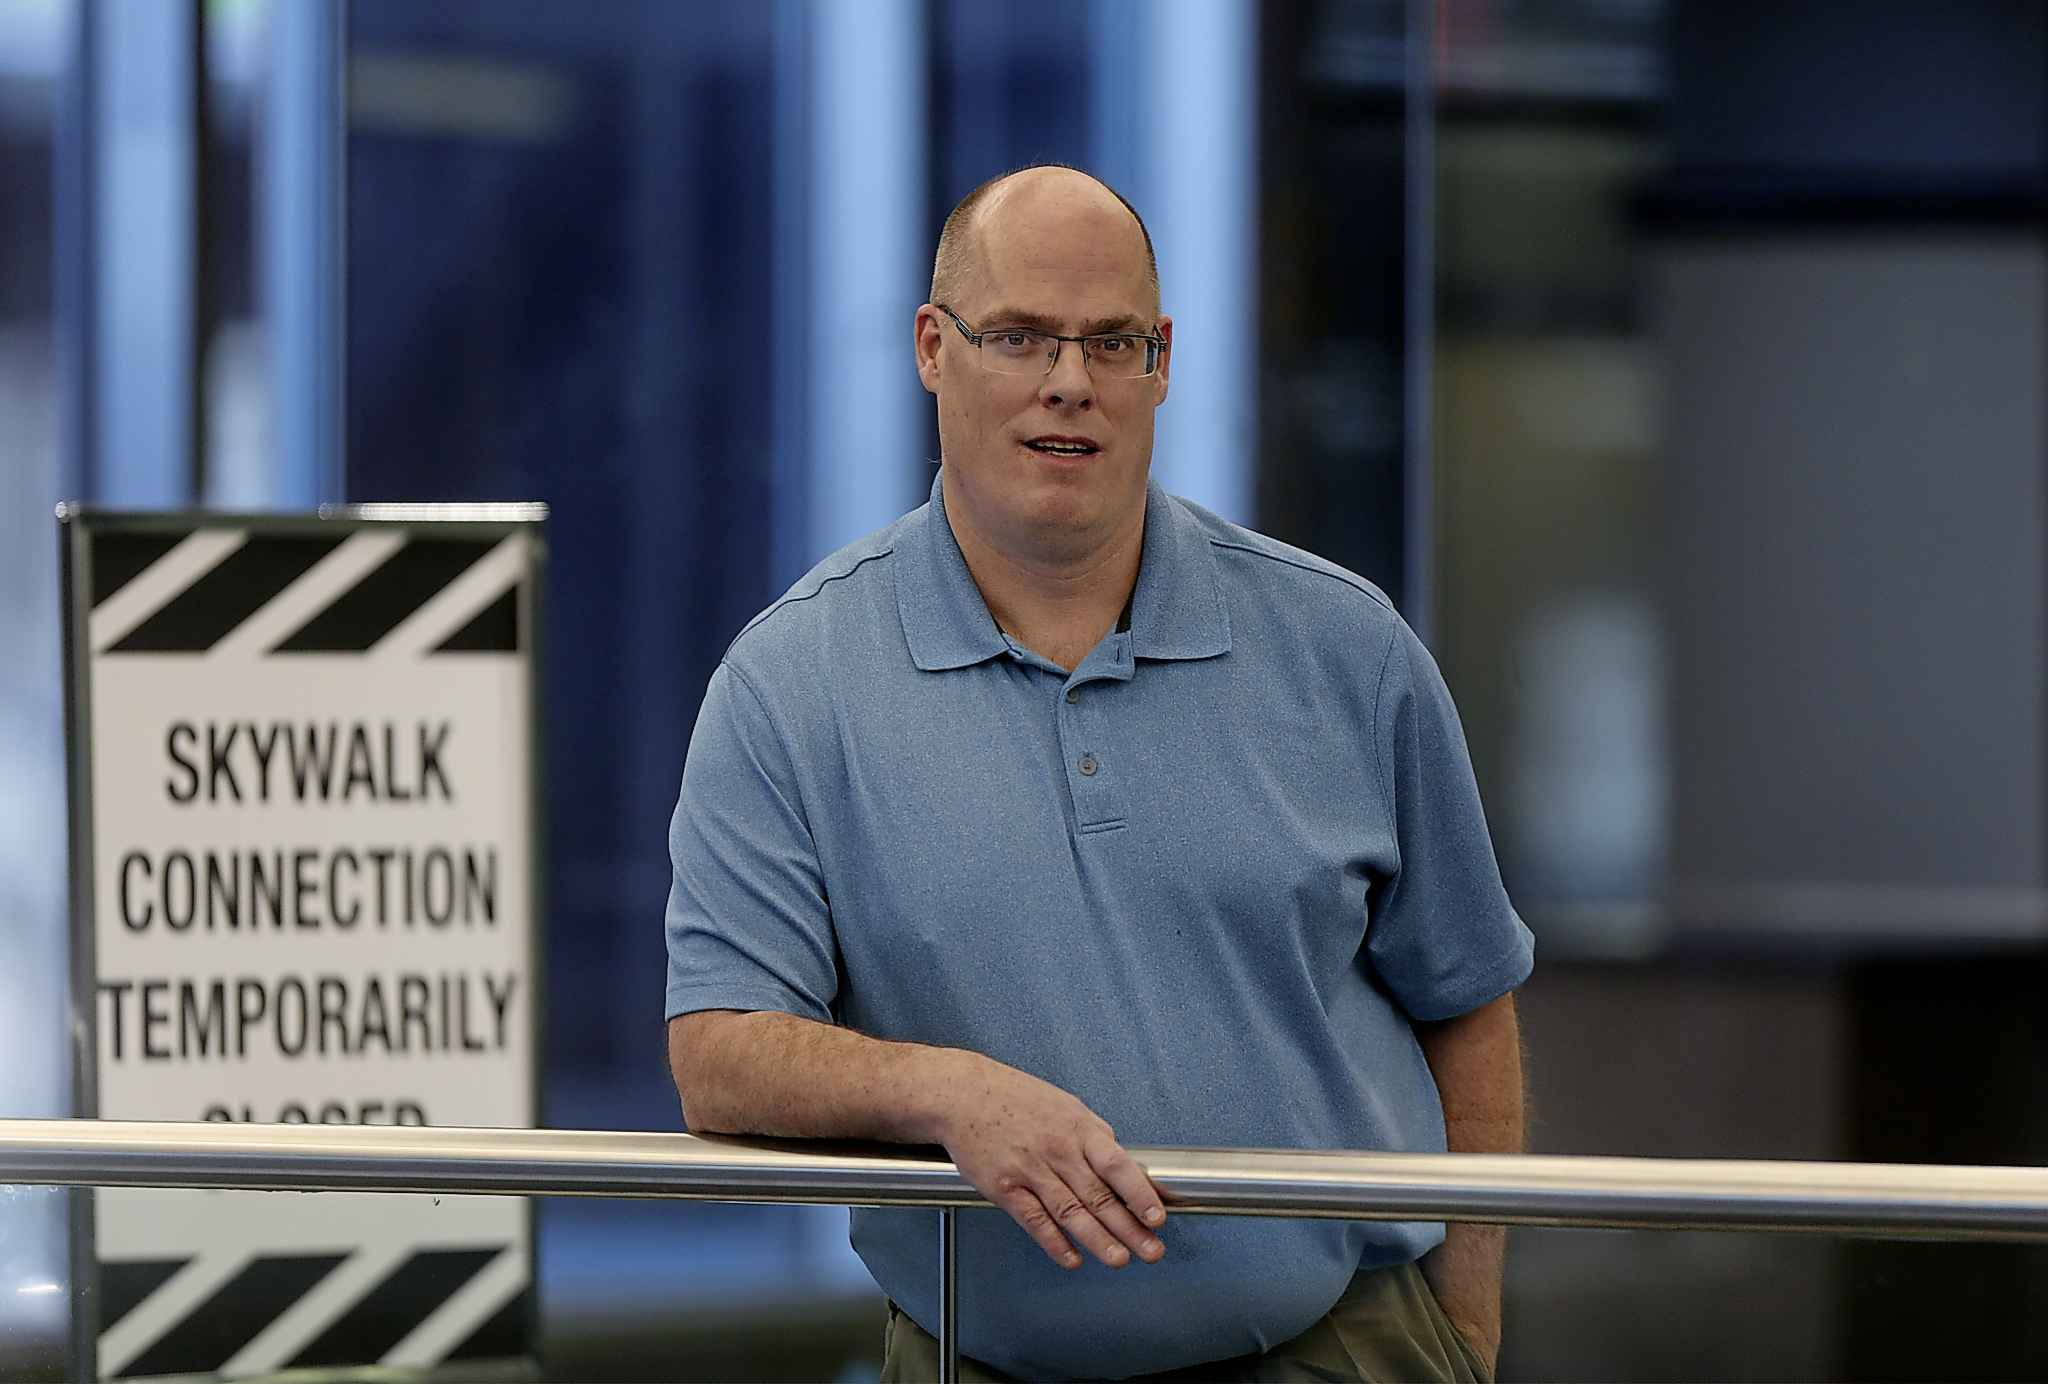 The government needs to support human-rights-based law, says David Kron. (Shannon VanRaes / Winnipeg Free Press files)